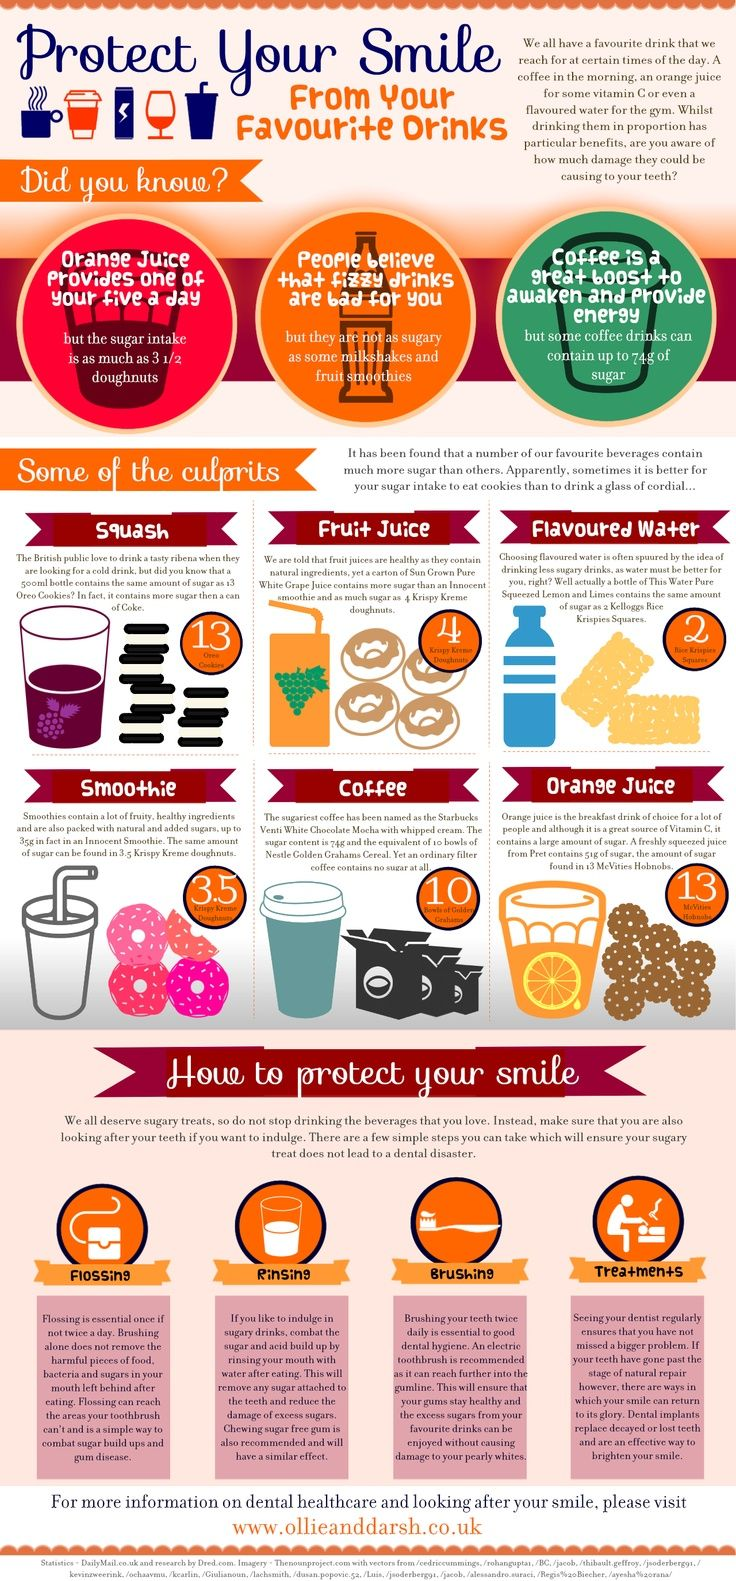 tiffany and co reviews How do you protect your smile from your favorite drinks   oral  health  smile